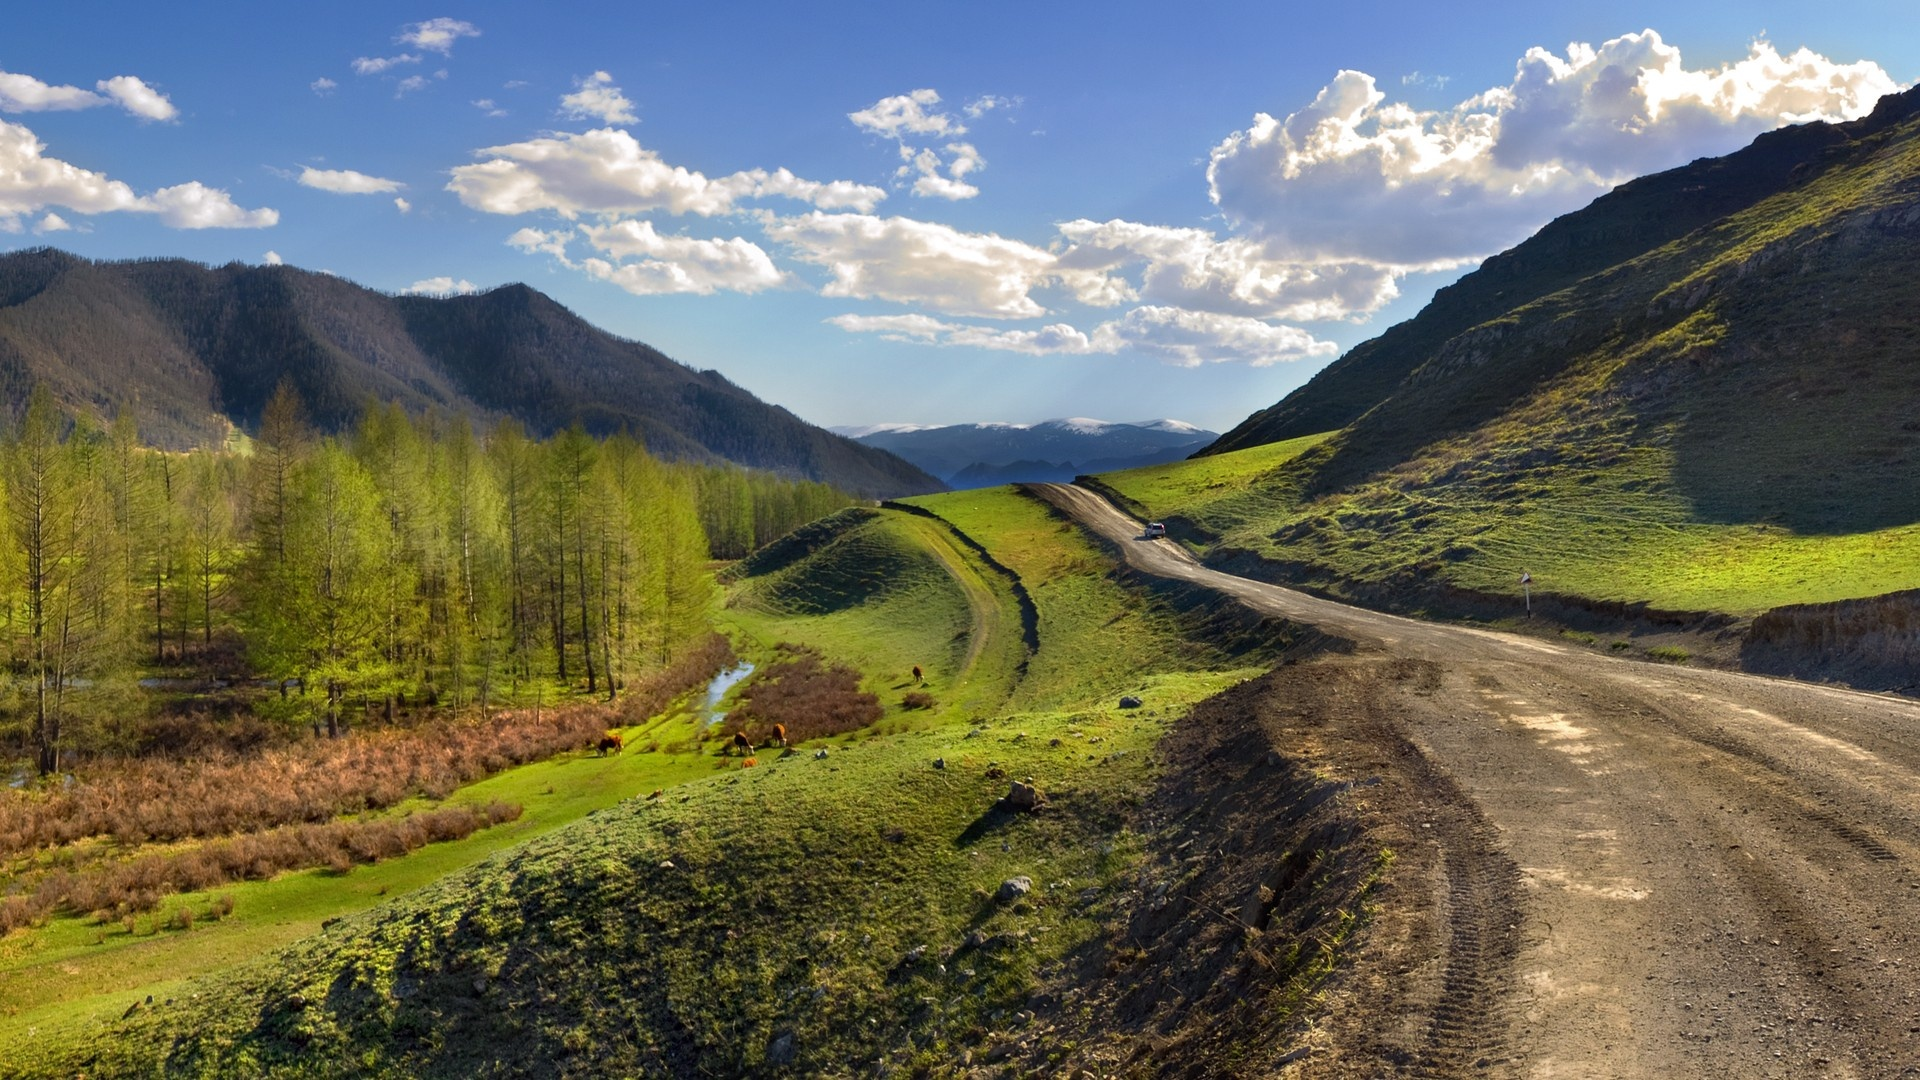 6861147-mountain-road-wallpapers